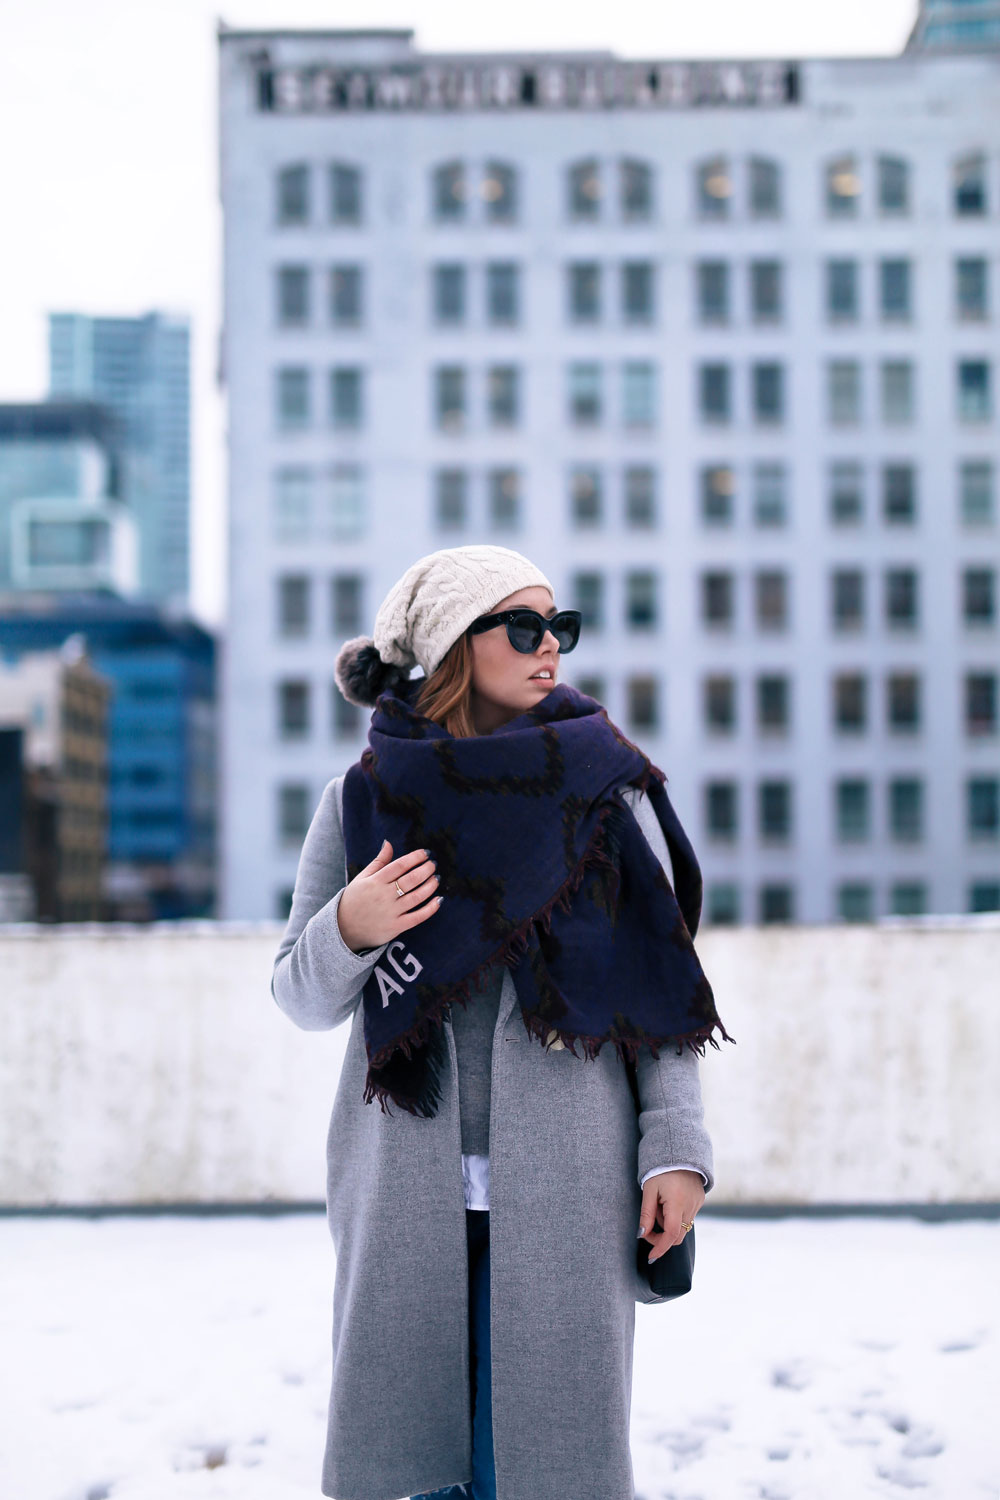 Cute outfit ideas in the snow - Aritzia blanket scarf, Aritzia grey wool coat, Tilley beanie, Mavi skinny jeans, Urban Outfitters ankle boots, Celine Caty sunglasses, layered oxford shirt